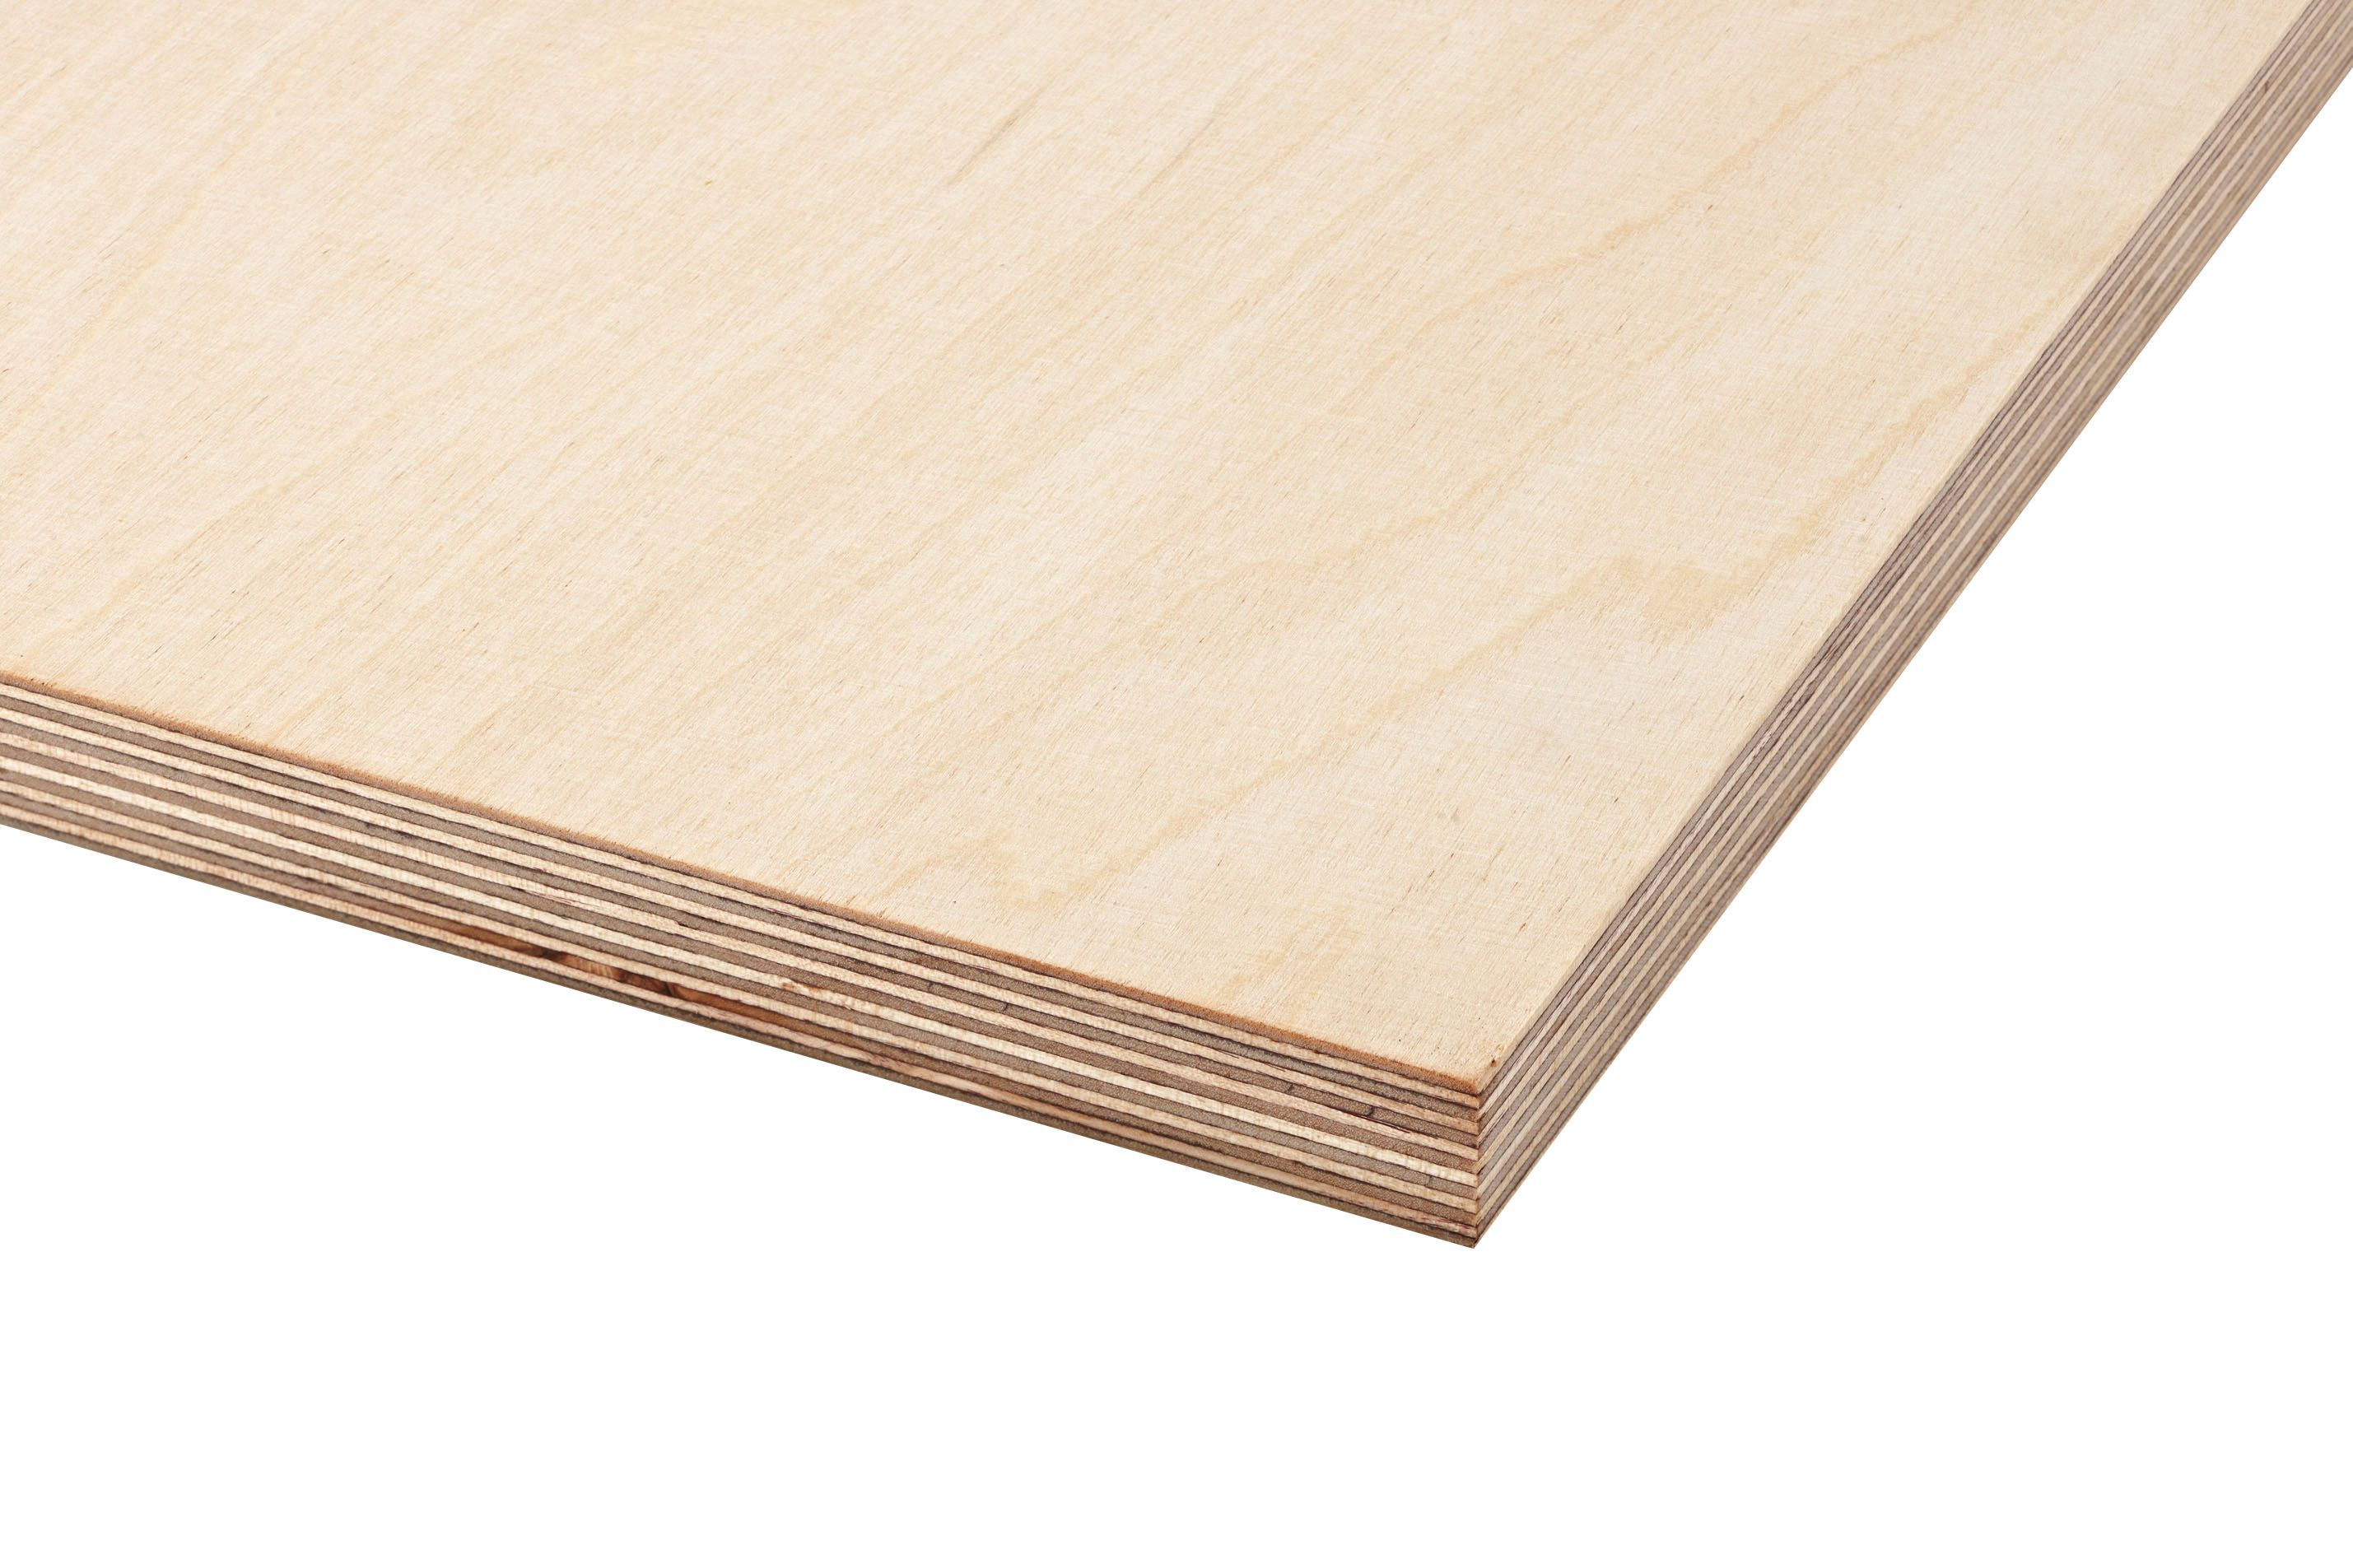 Birch Plywood Th 18mm W 1220mm L